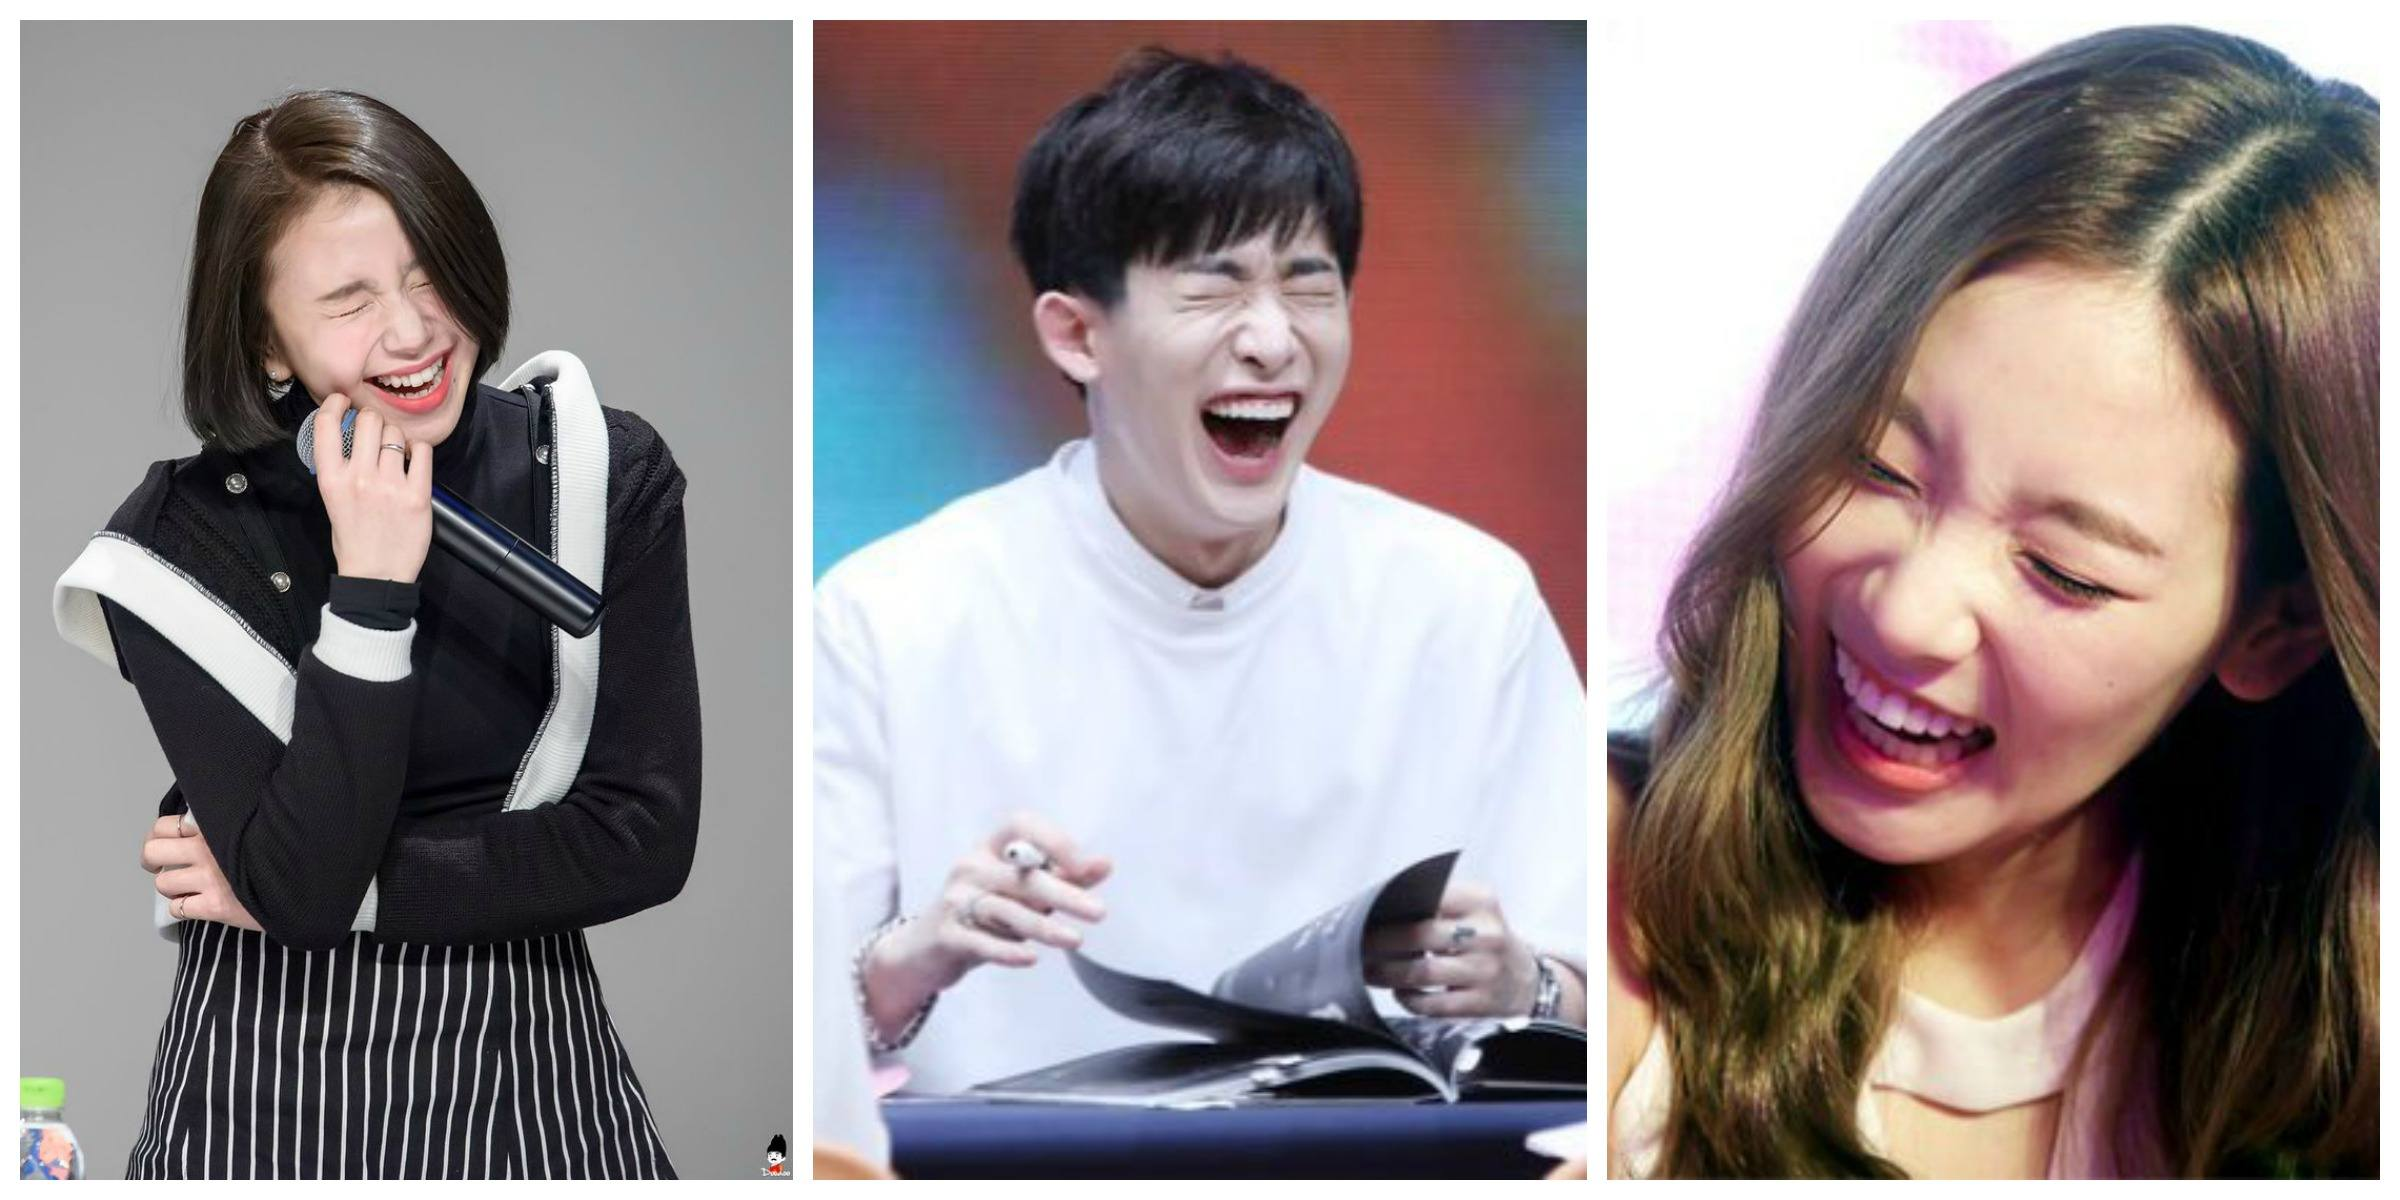 14 Idols With The Most Contagious Laughter